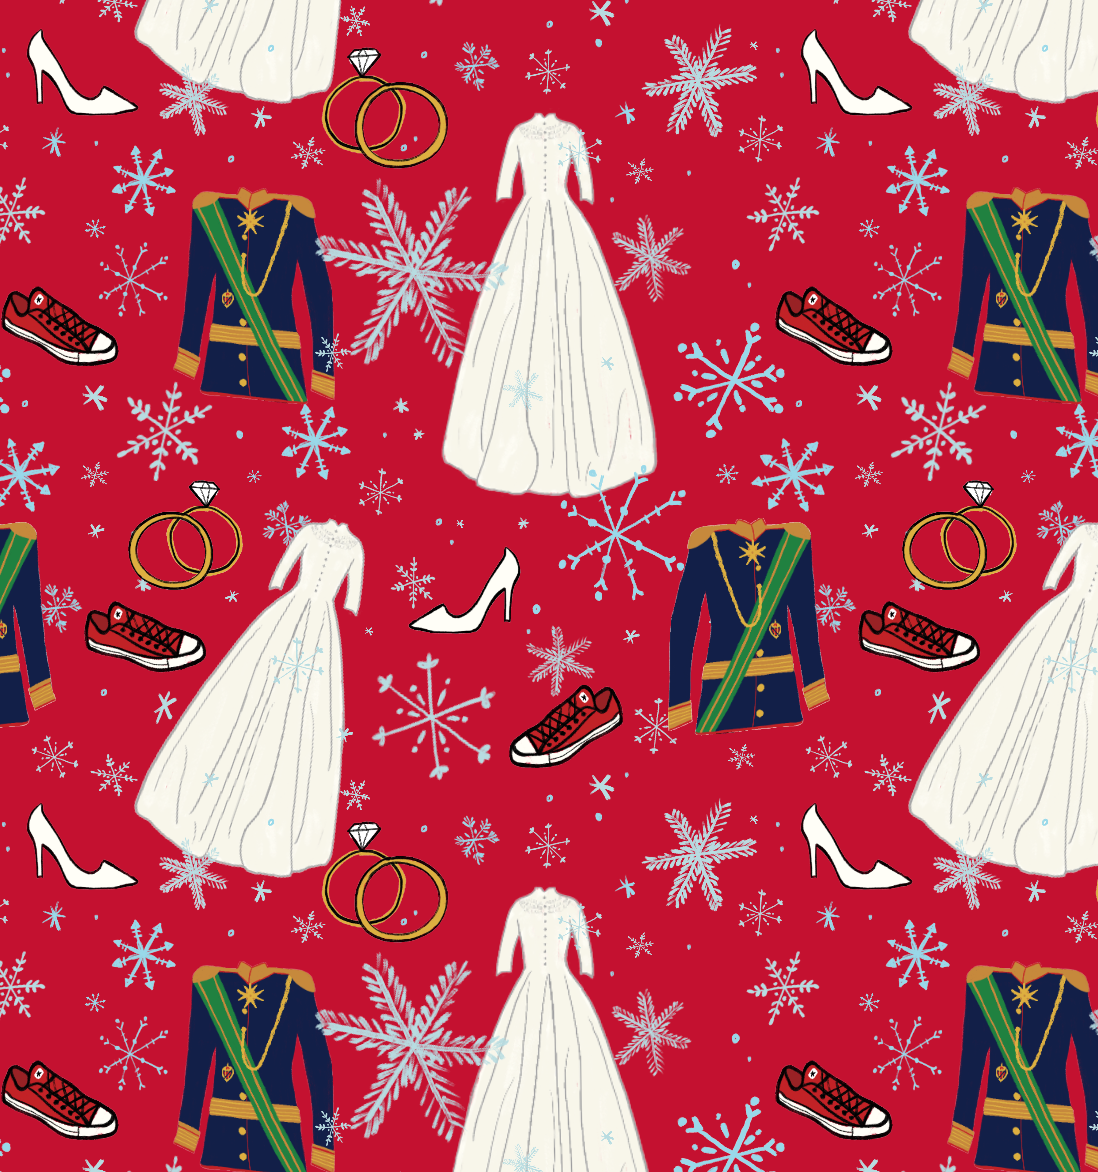 Pattern by Erika FIrm for Netflix for A Christmas Prince The Royal Wedding